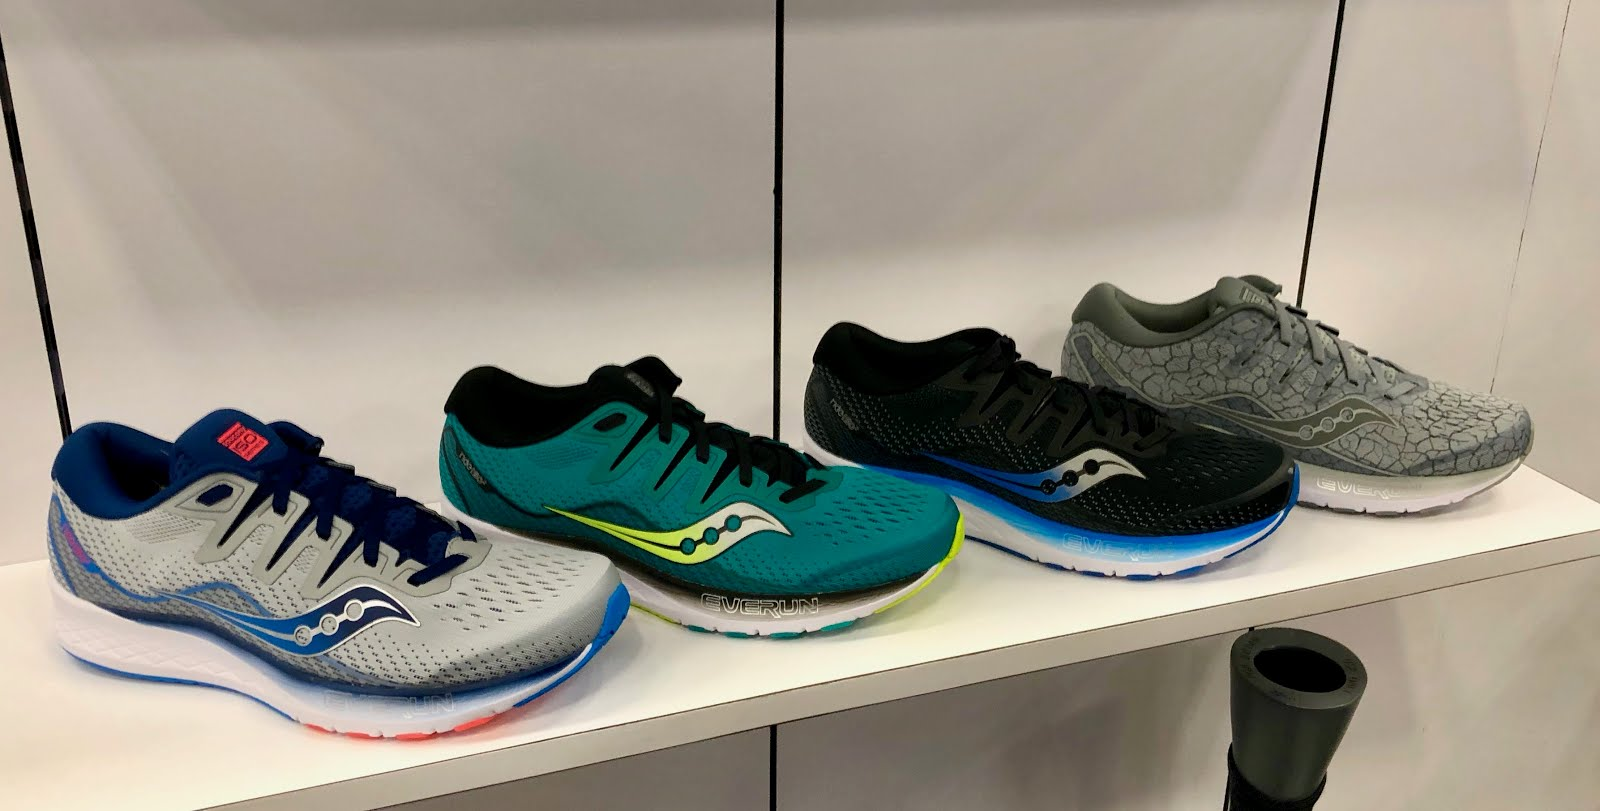 1eb8f1308f Road Trail Run: Saucony 2019 Run Shoe Previews: Liberty ISO 2, Ride ...